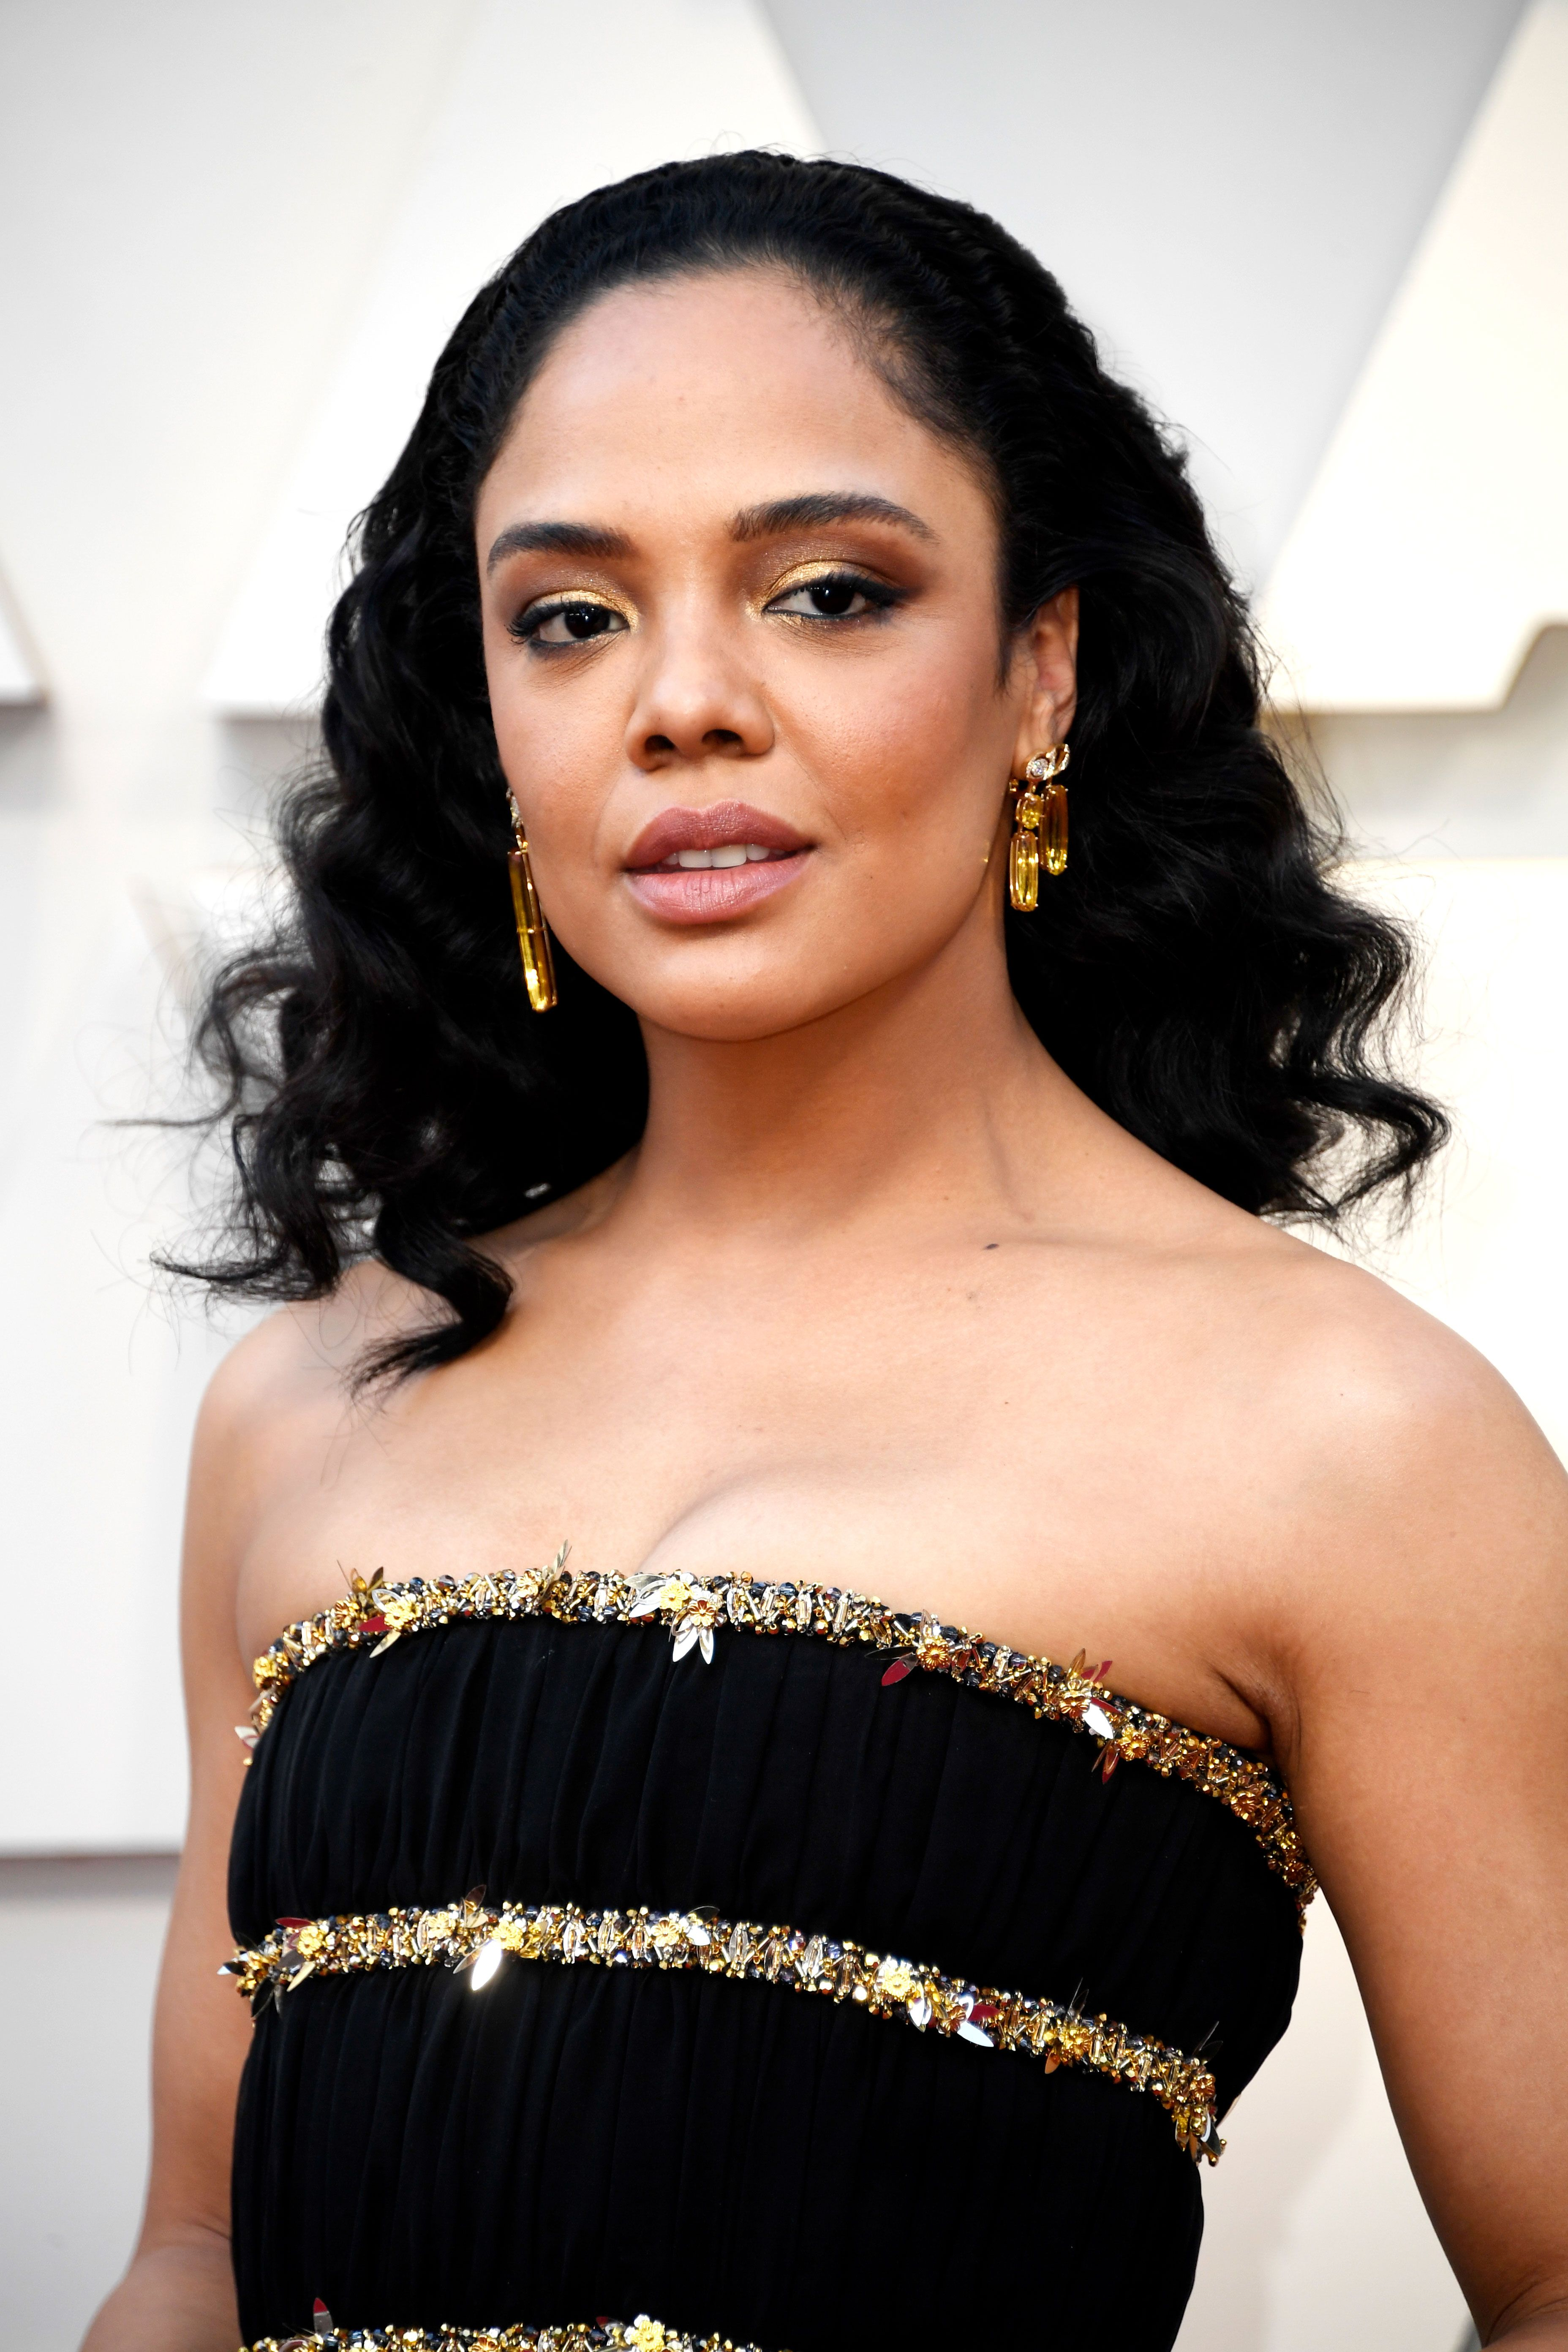 The Hair And Beauty Moments On The 2019 Oscars Red Carpet